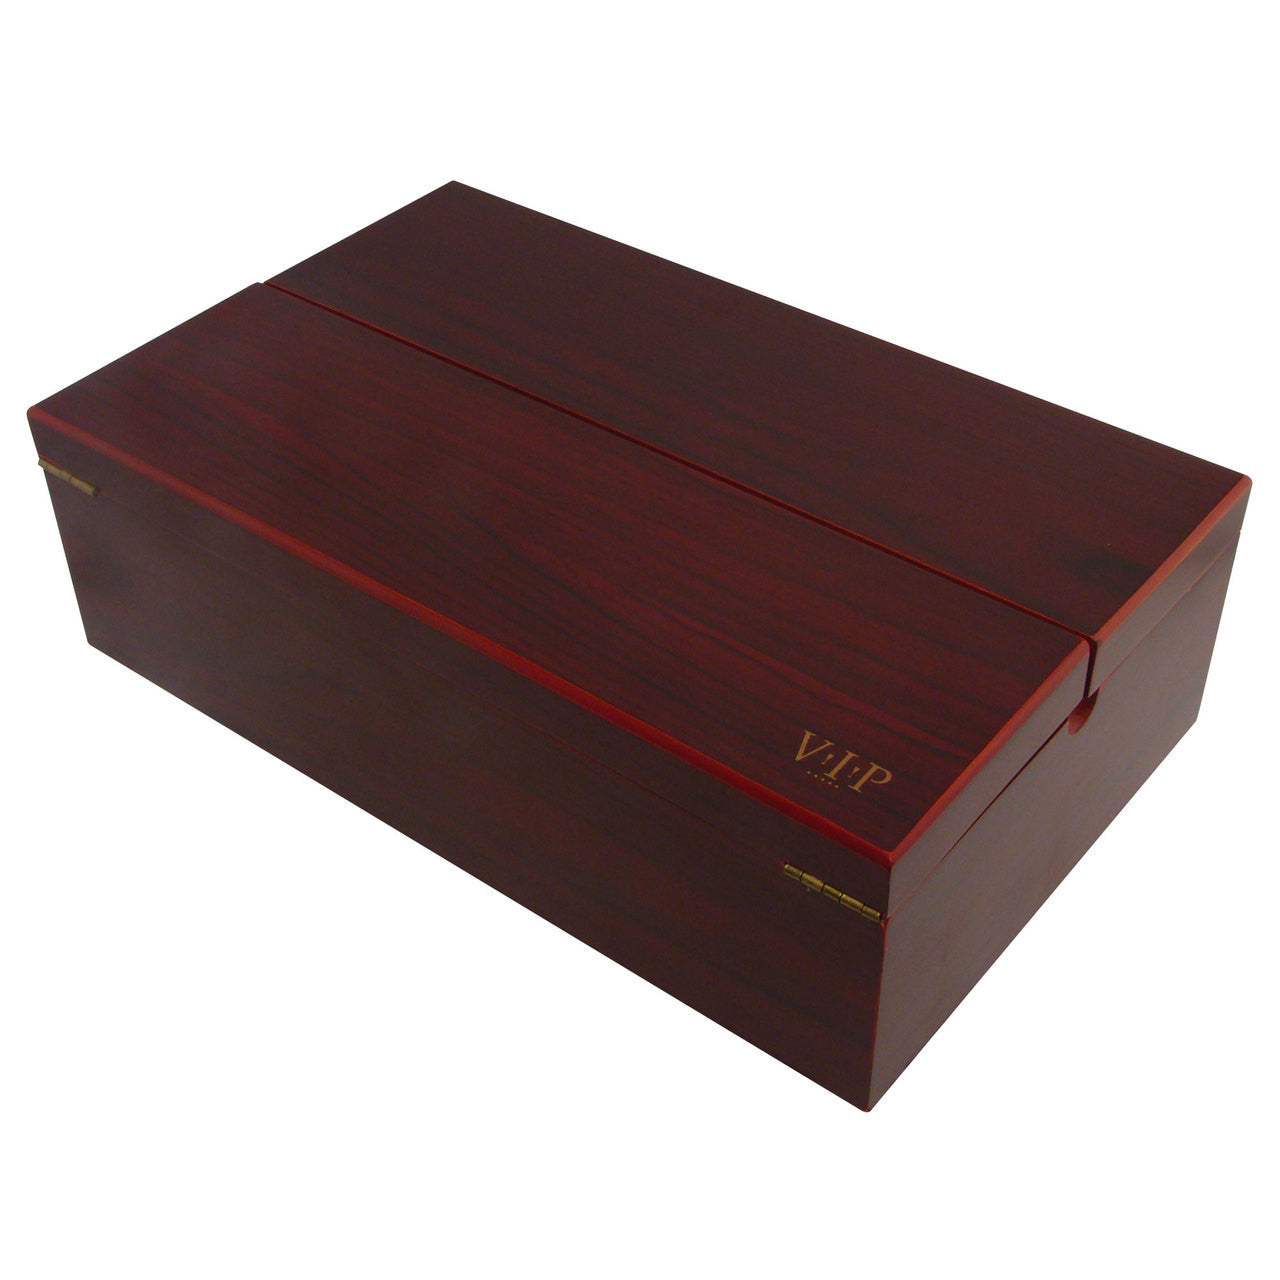 Wine Gift Box Set For Two Bottles Brings 6 Accessories